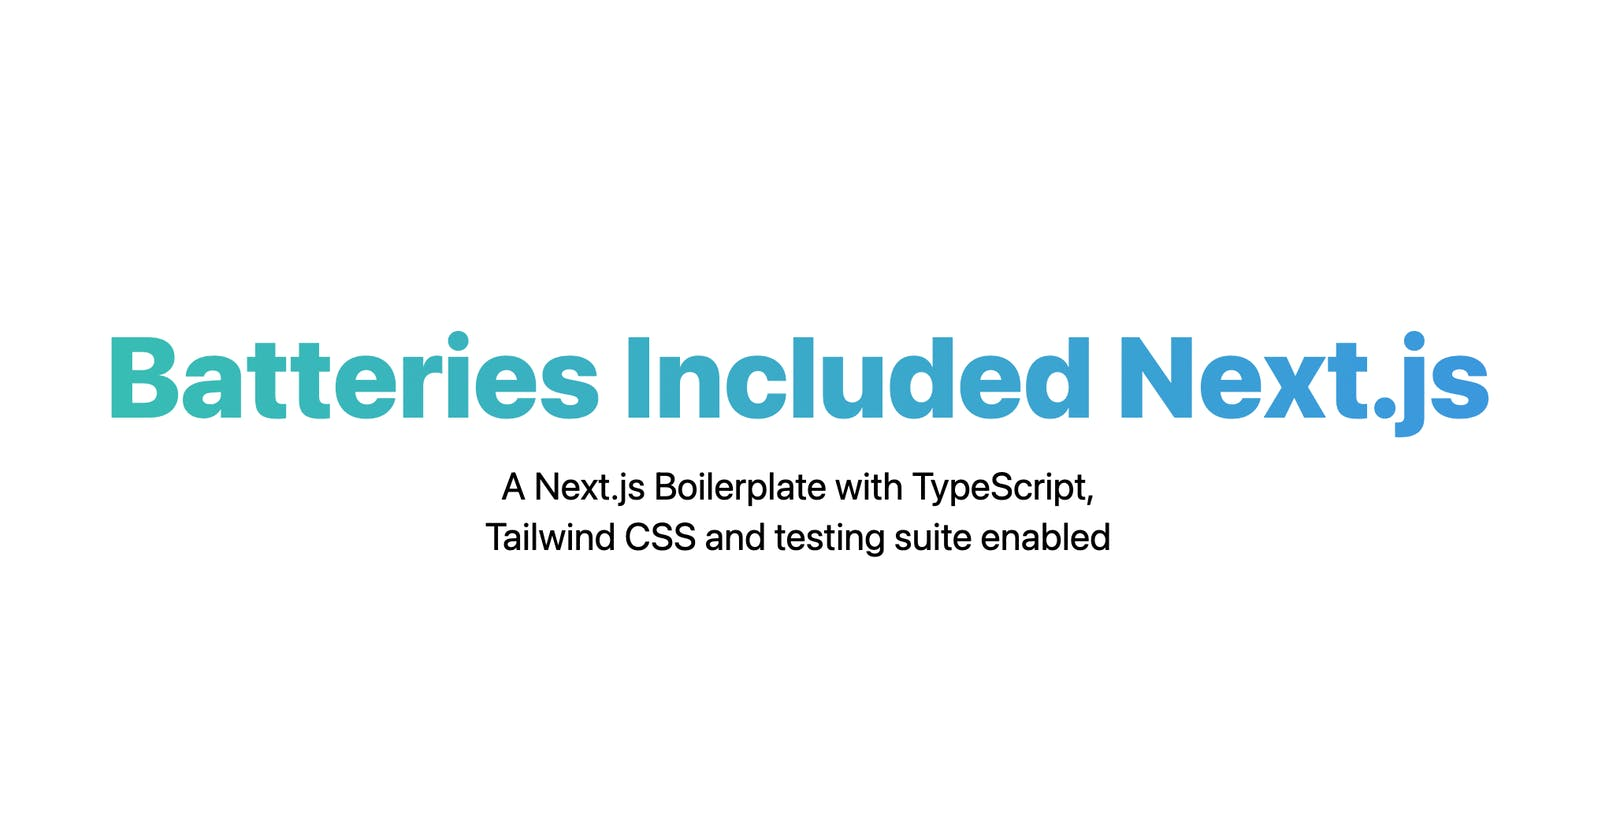 Setting up a Next.js Application with TypeScript, JIT Tailwind CSS and Jest/react-testing-library